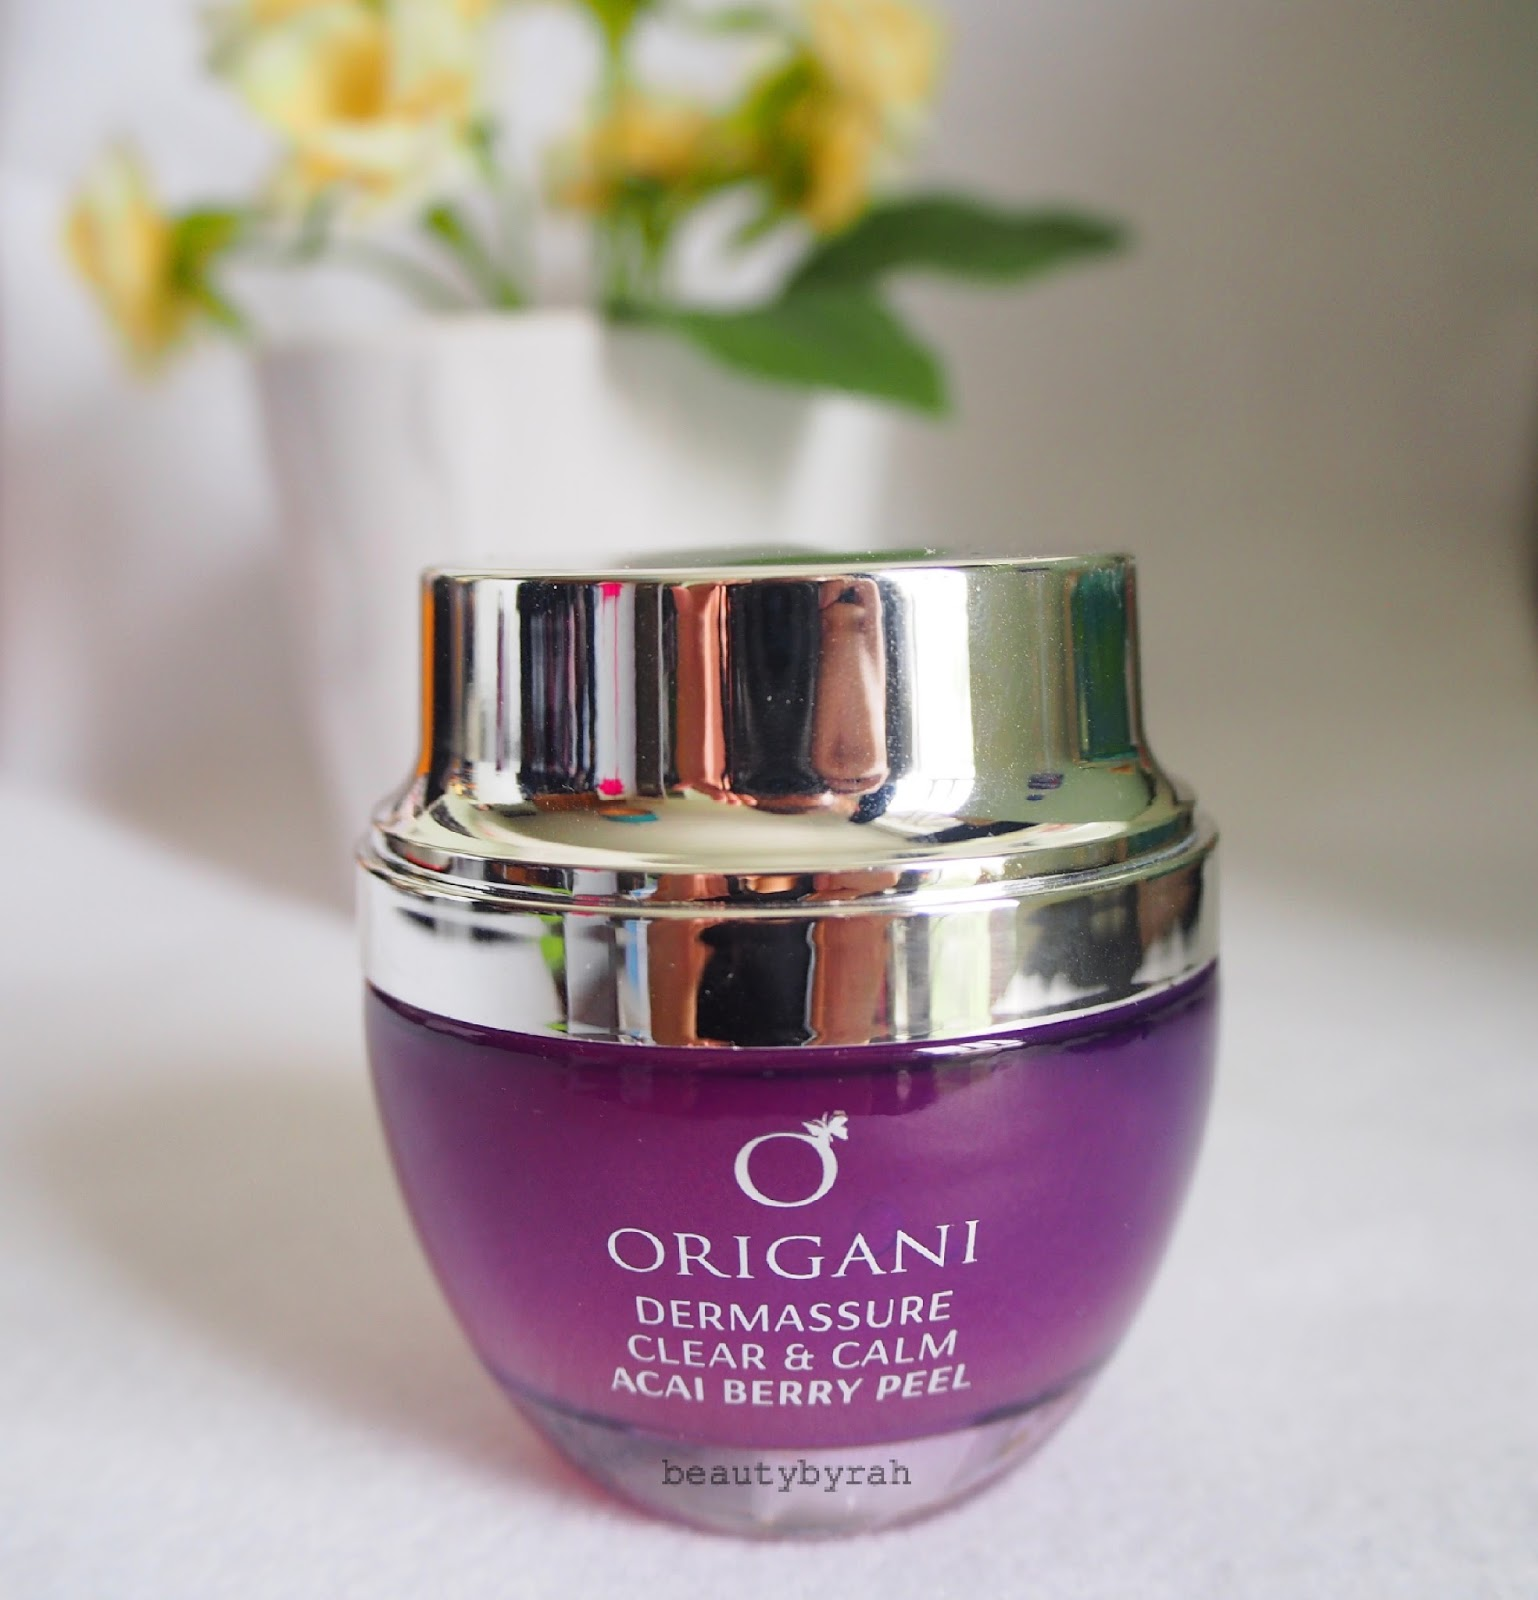 Origani Dermassure Clear & Calm Acai Berry Peel Review